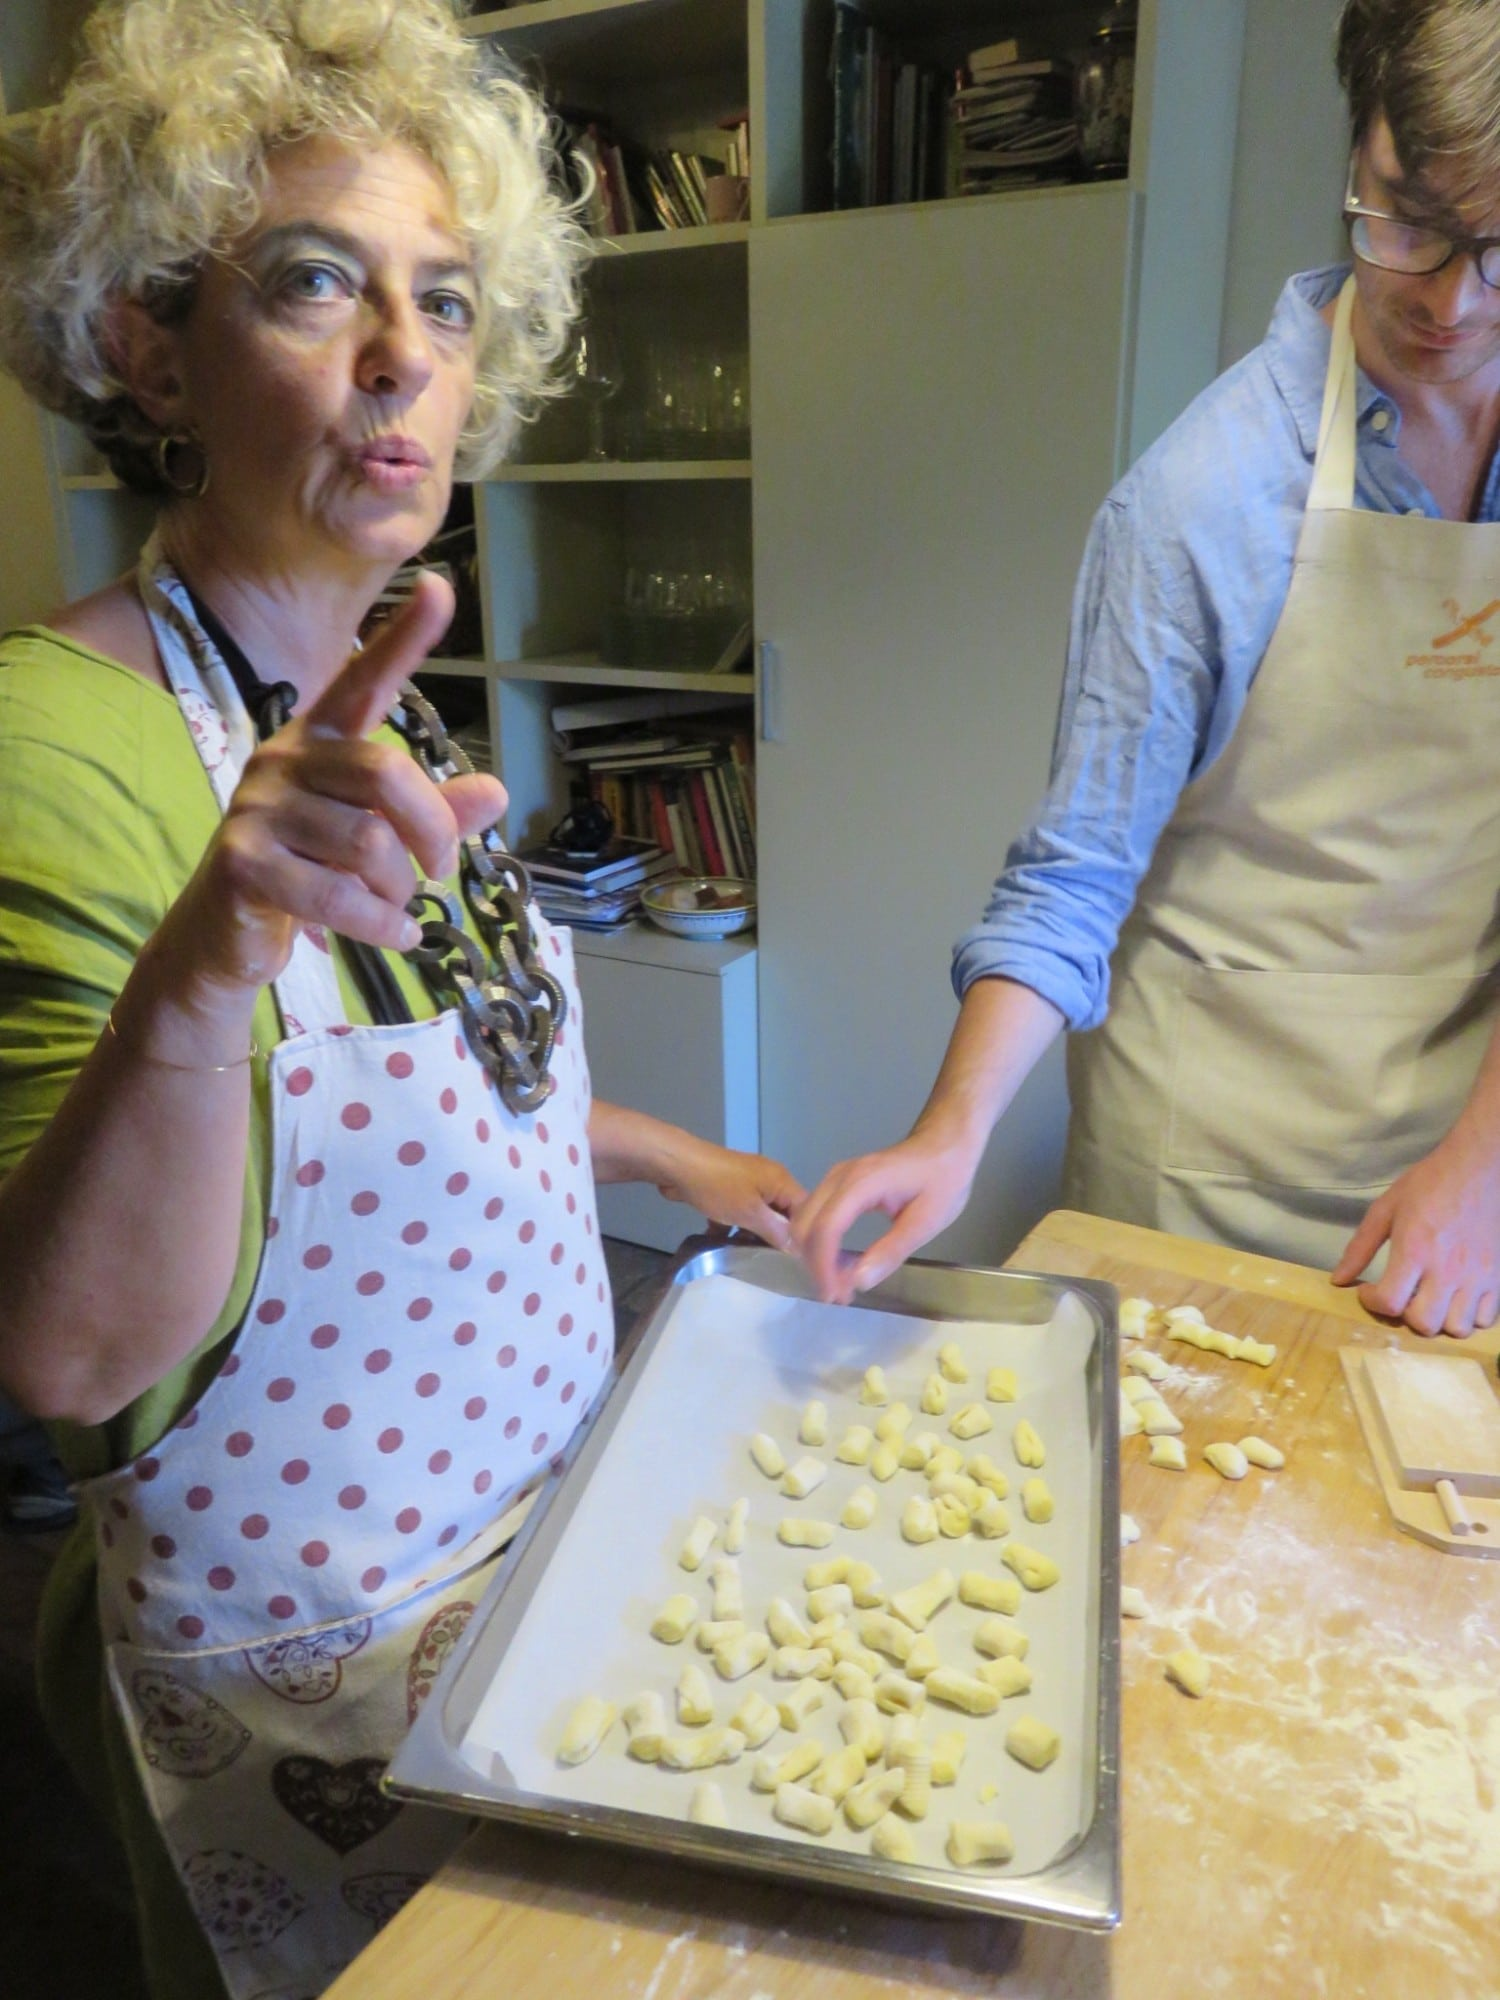 Umbrian cooking class with Lorena Autuori